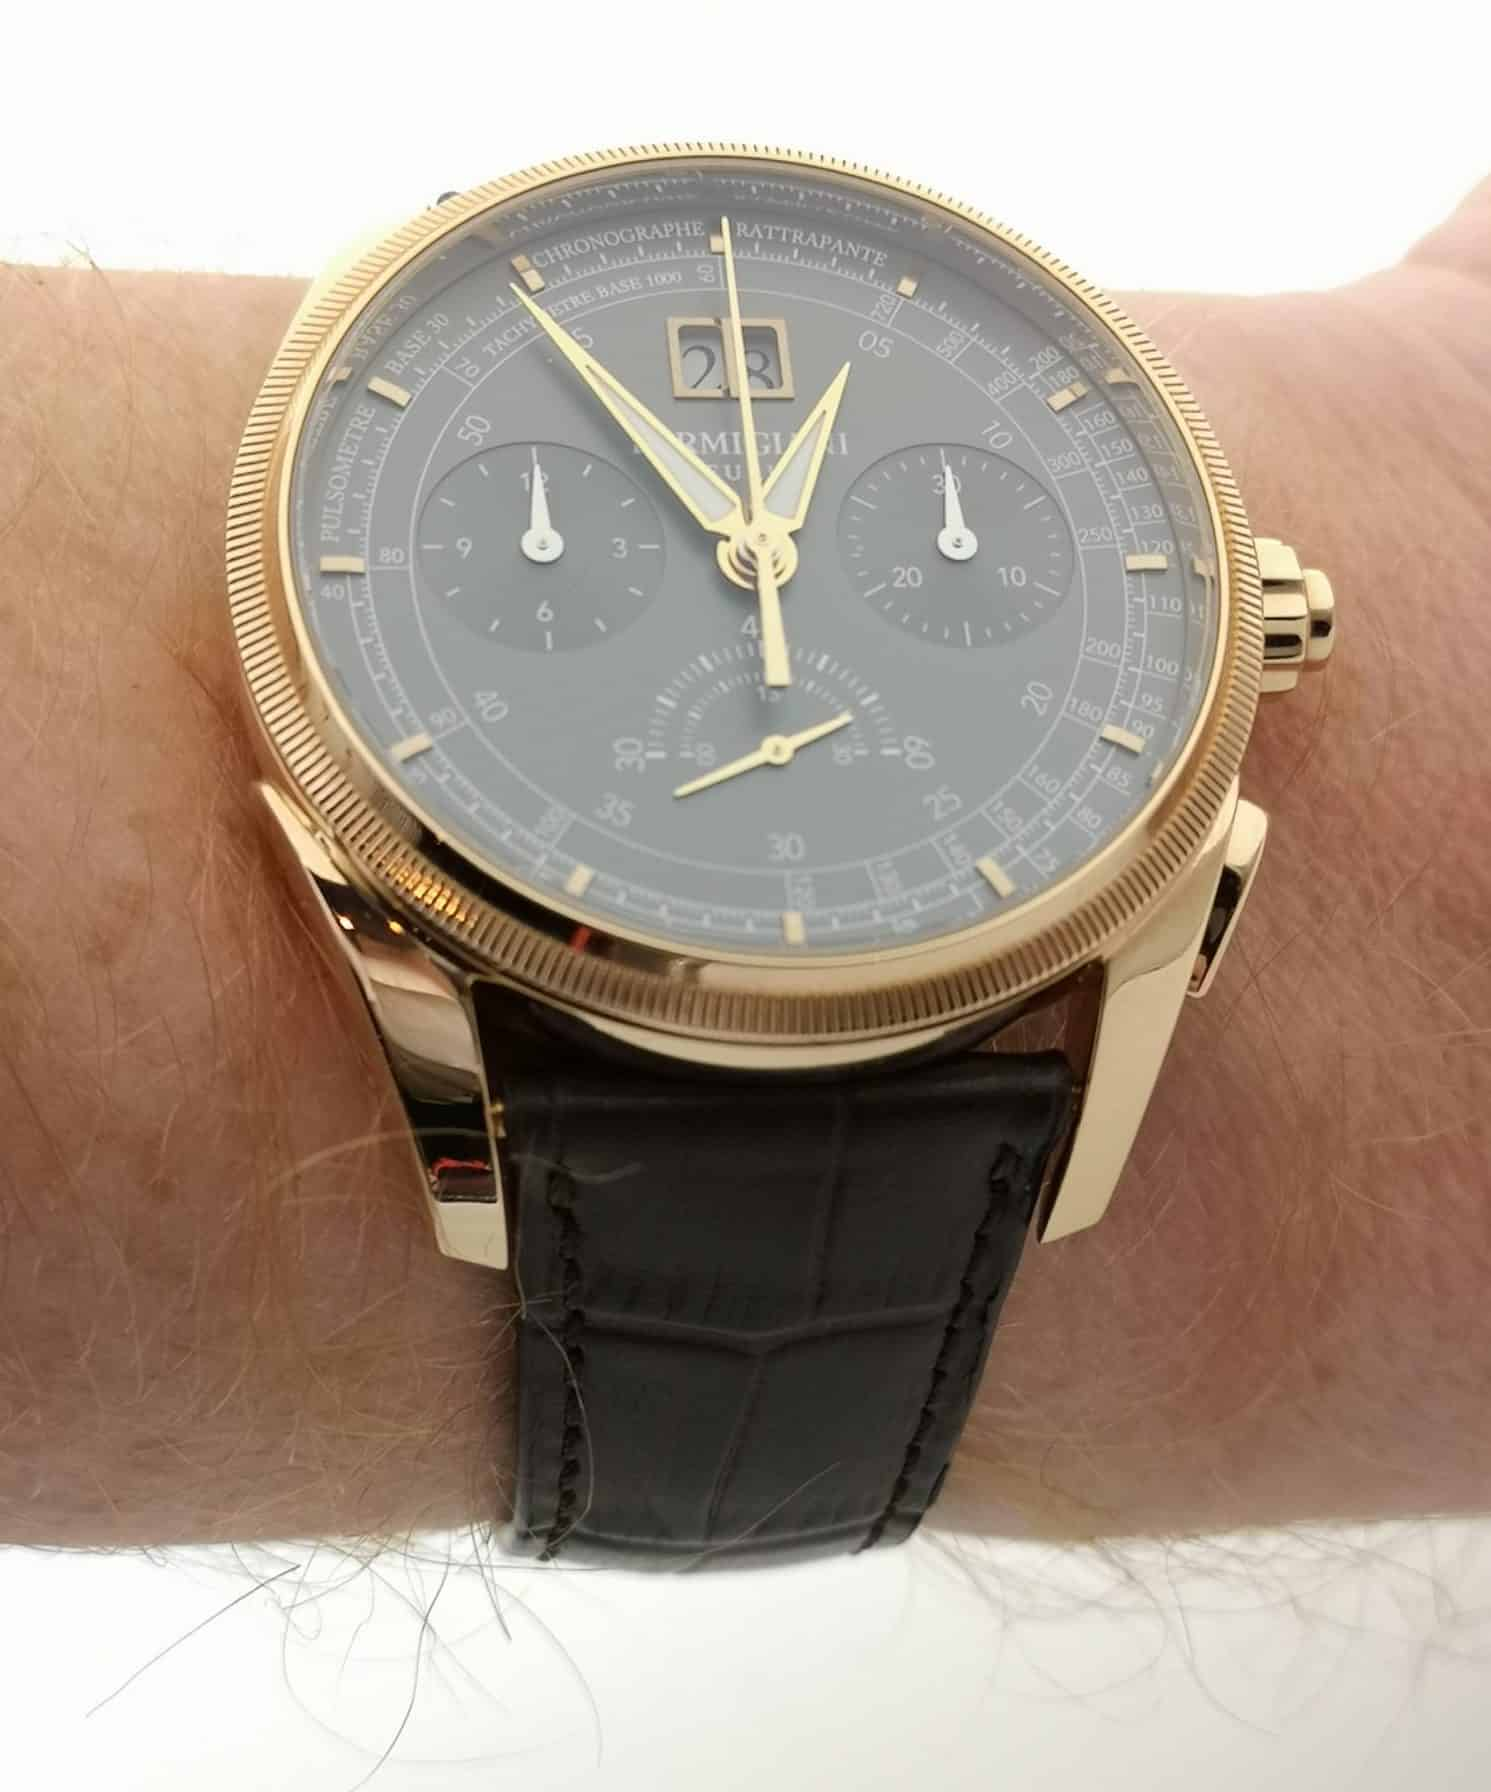 Parmigiani Fleurier Tonda Chronor Slate On the Wrist